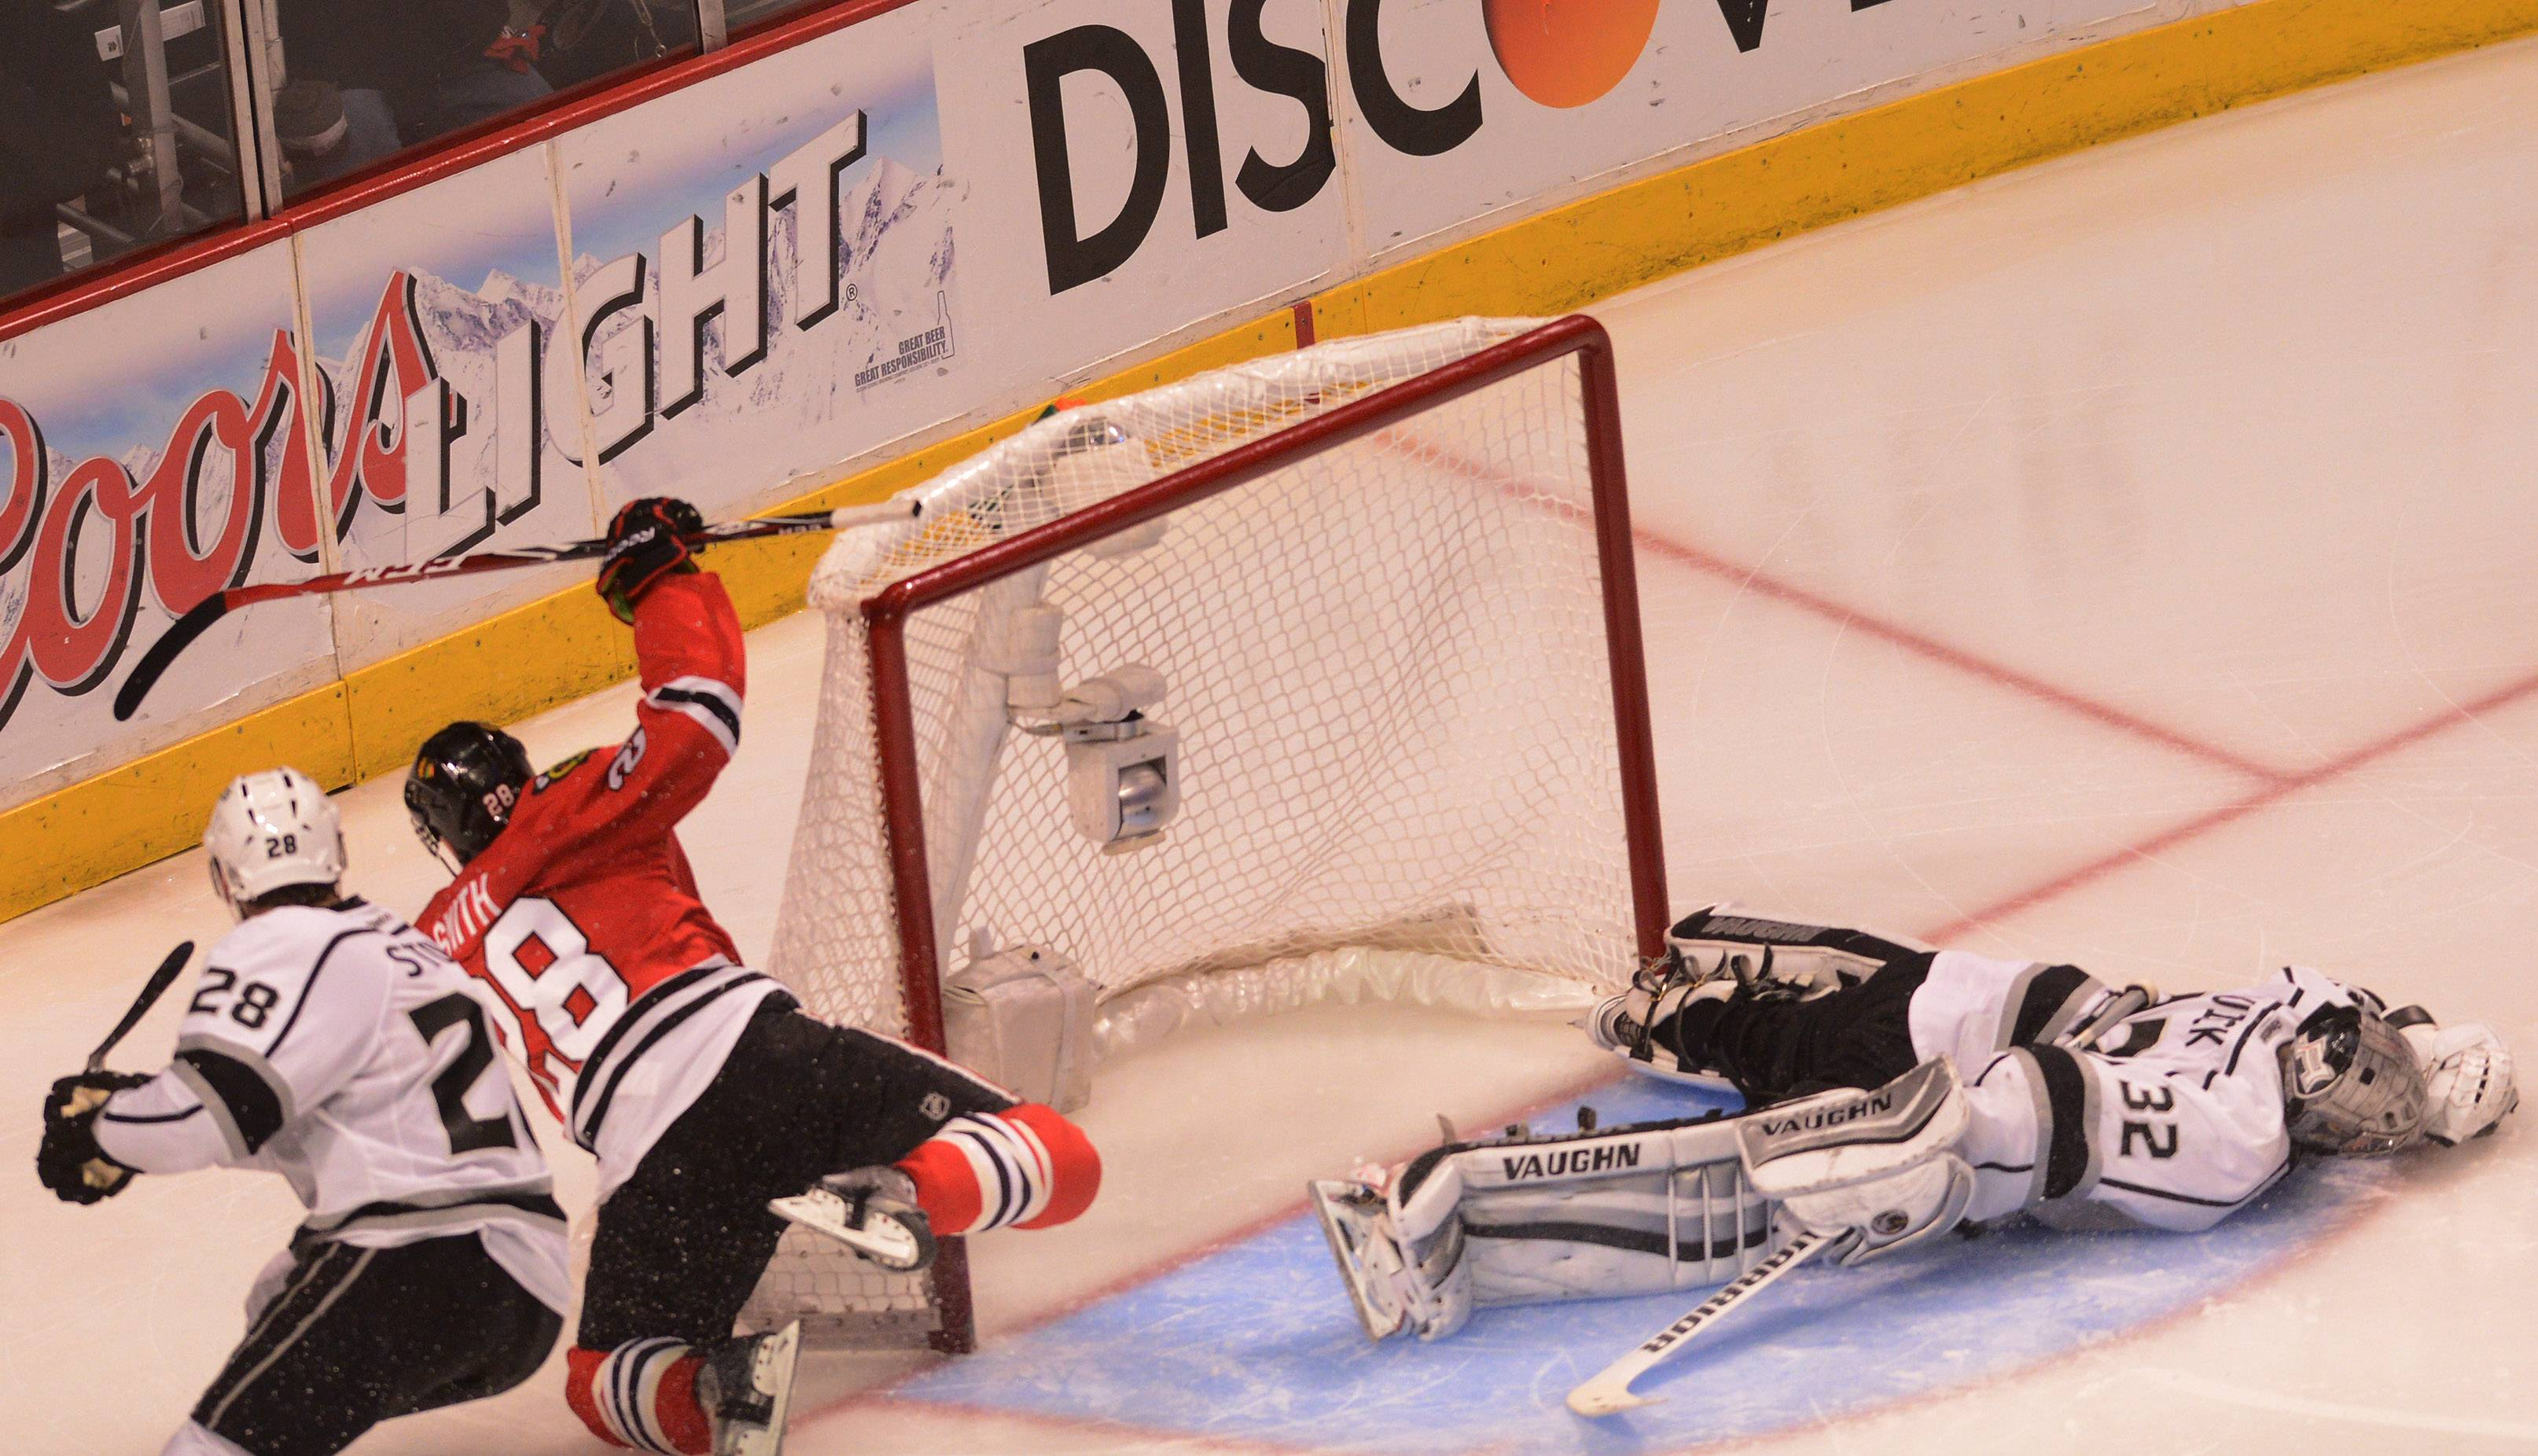 Blackhawks right wing Ben Smith scores in 3rd period during Game 5 of the Western Conference finals at the United Center on Wednesday night.